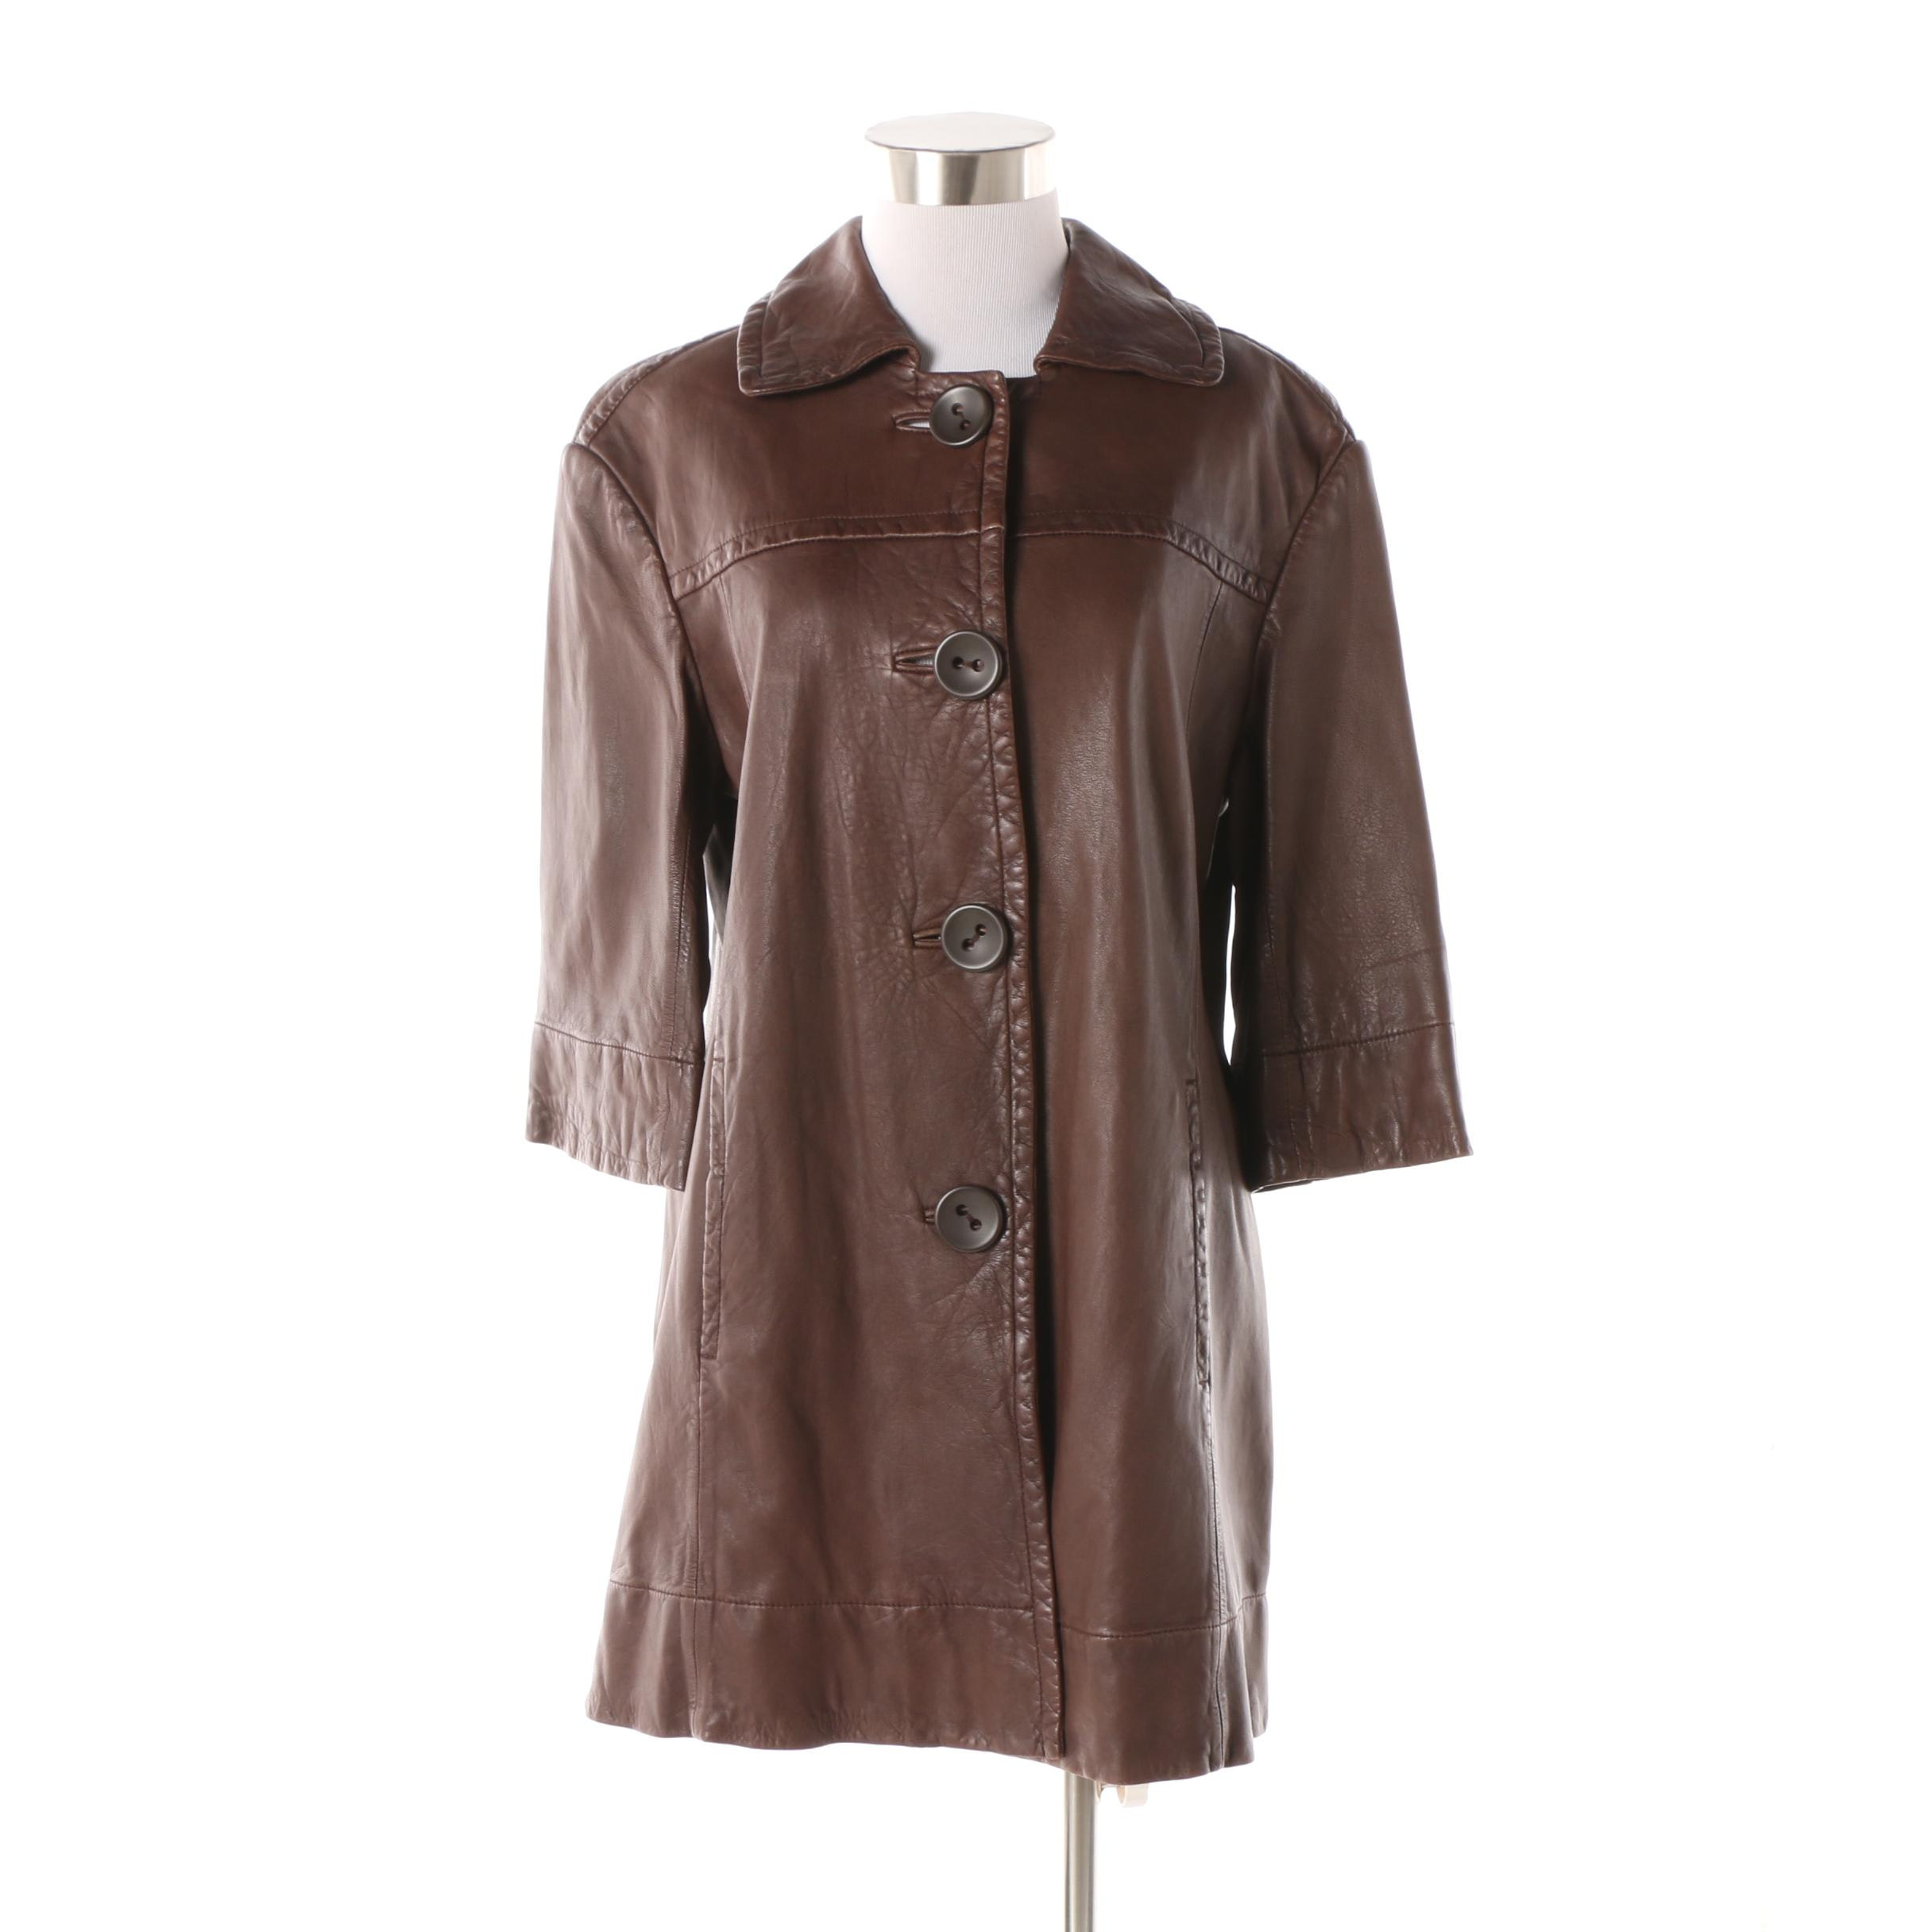 Vince Brown Leather Three-Quarter Length Sleeve Coat